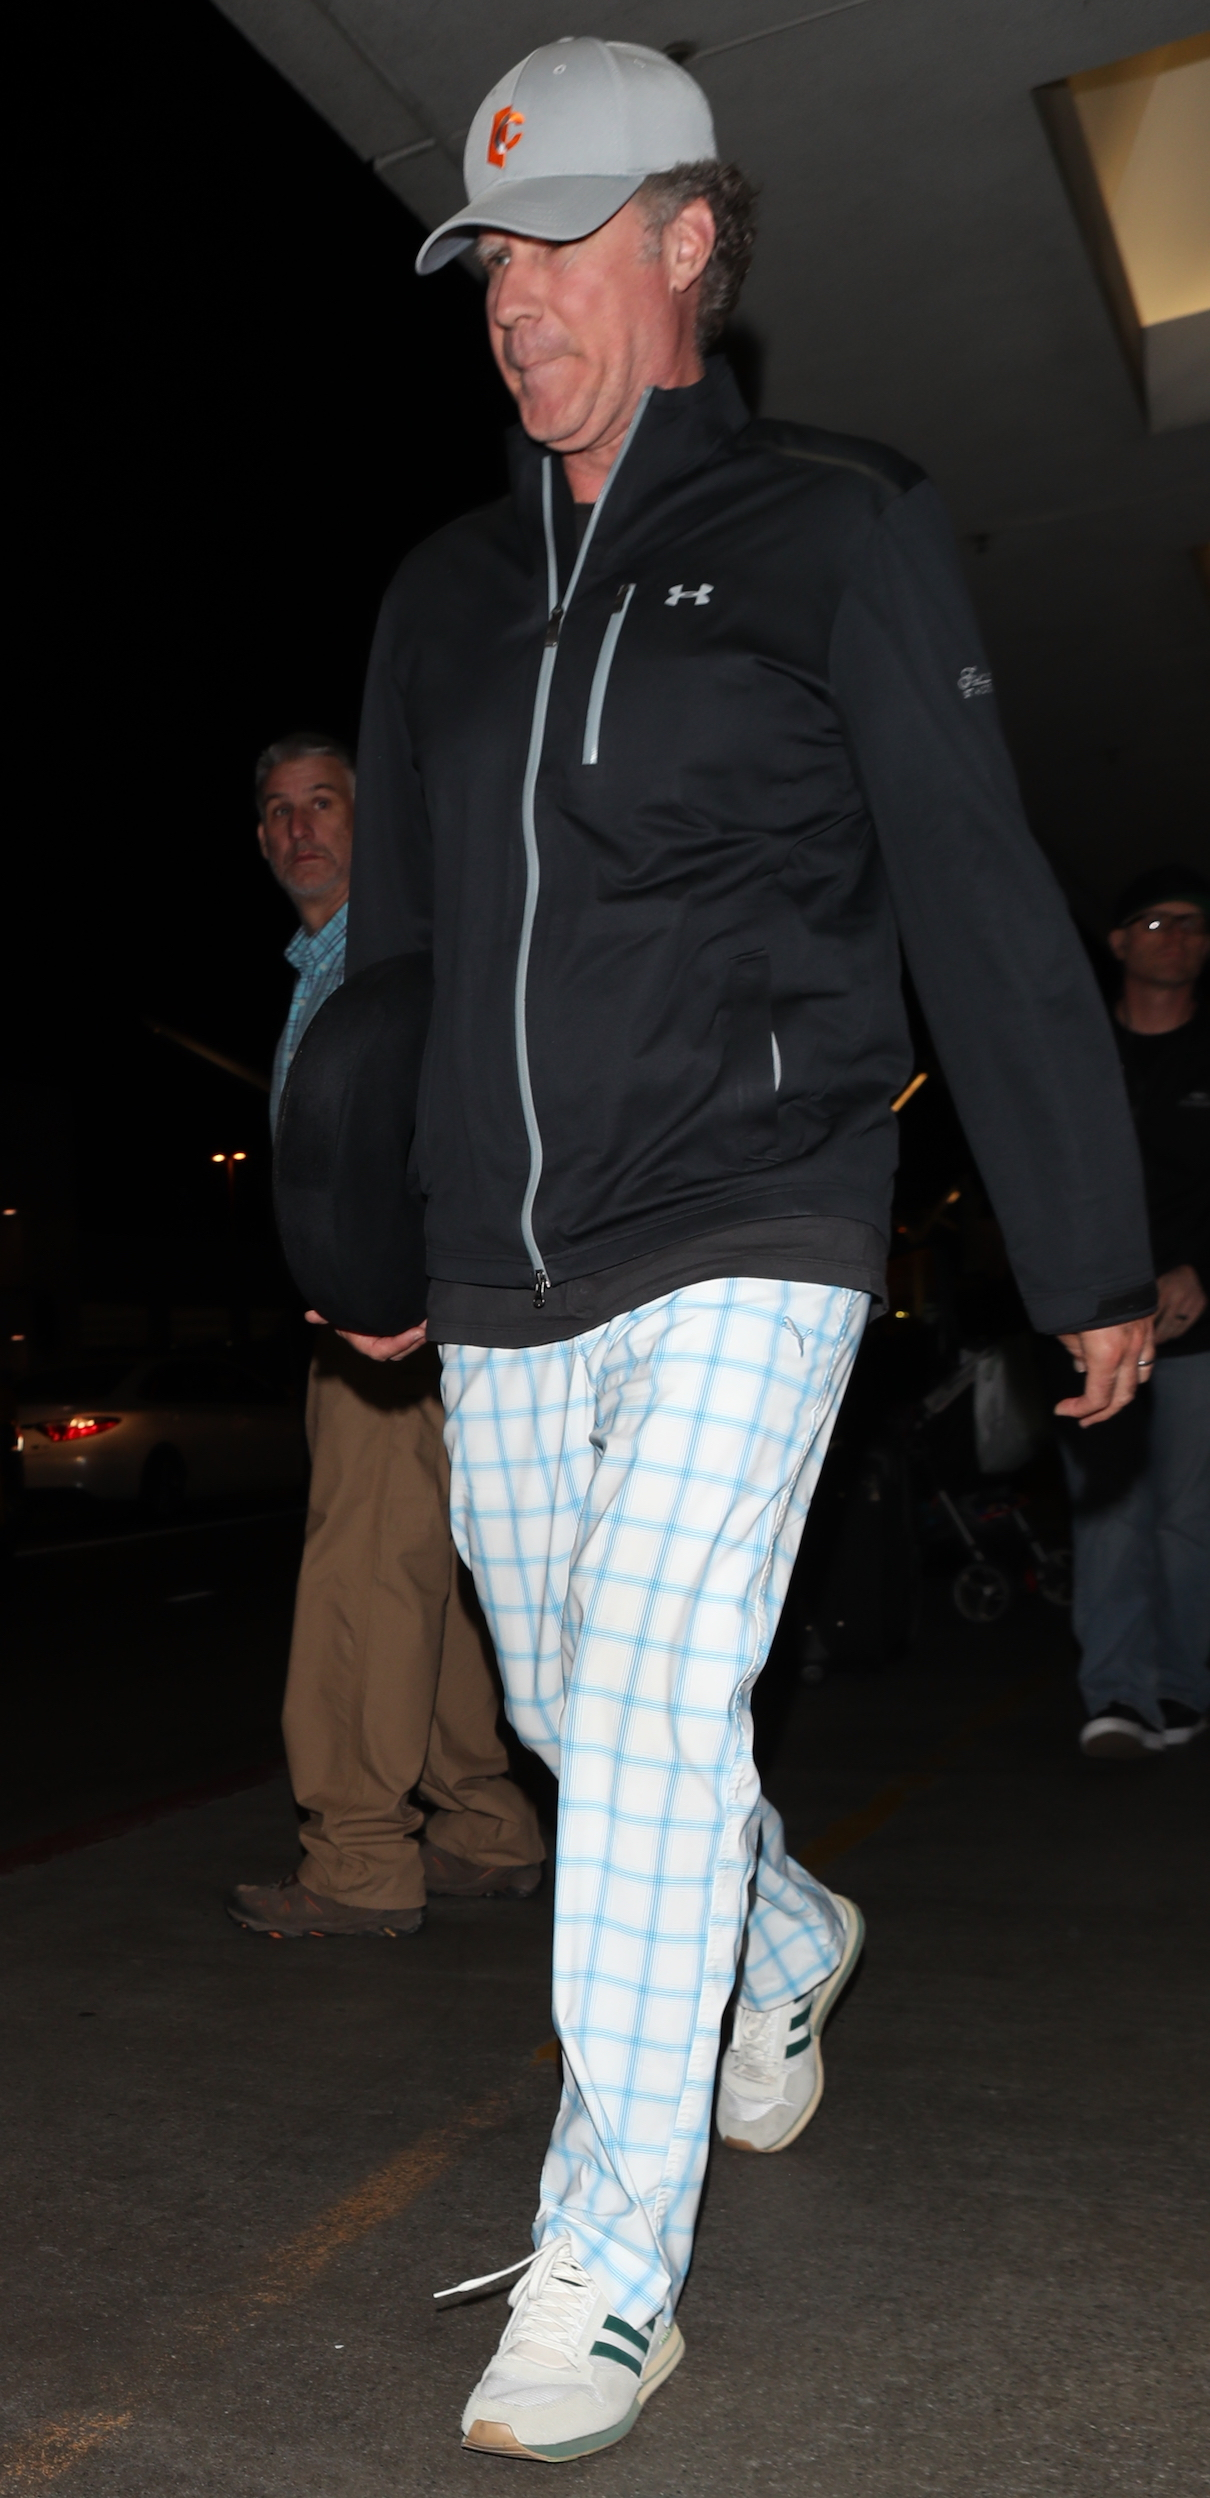 Will Ferrell was spotted arriving at LAX airport in Los Angeles on May 1, 2018.